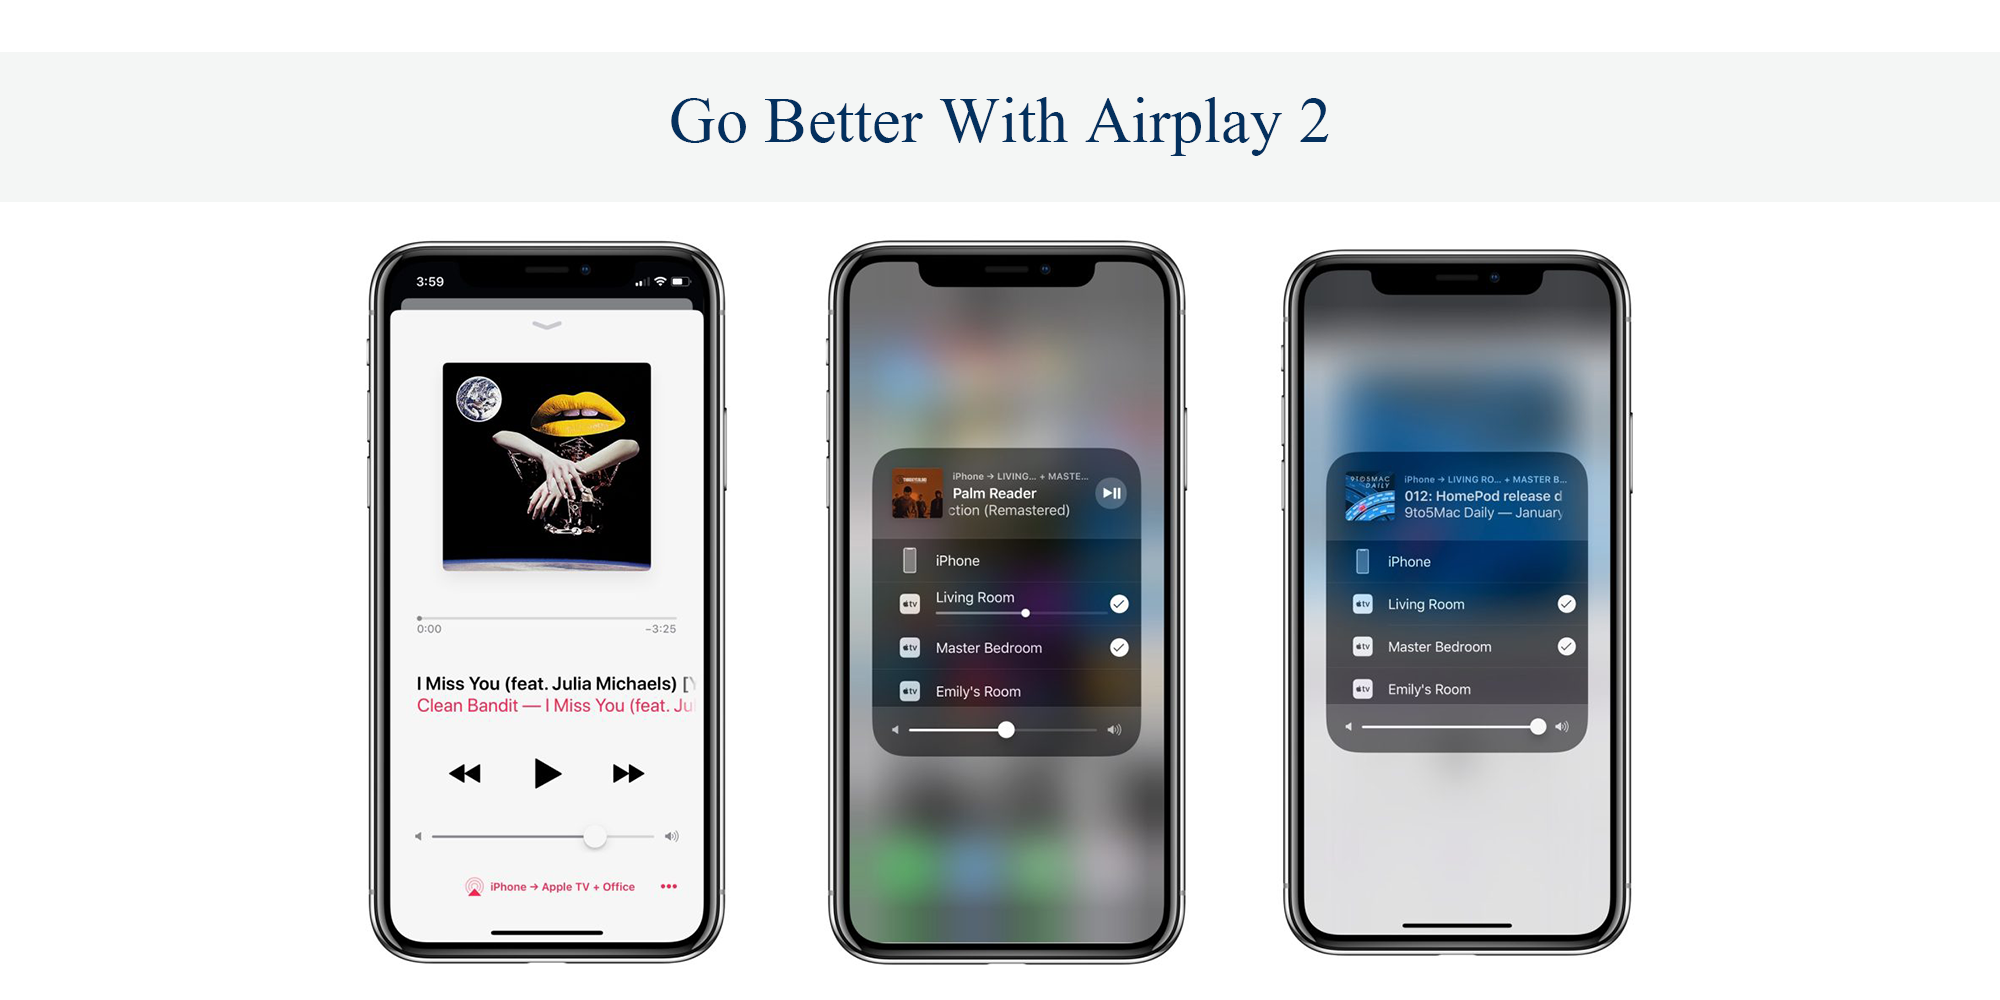 Go Better With Airplay 2